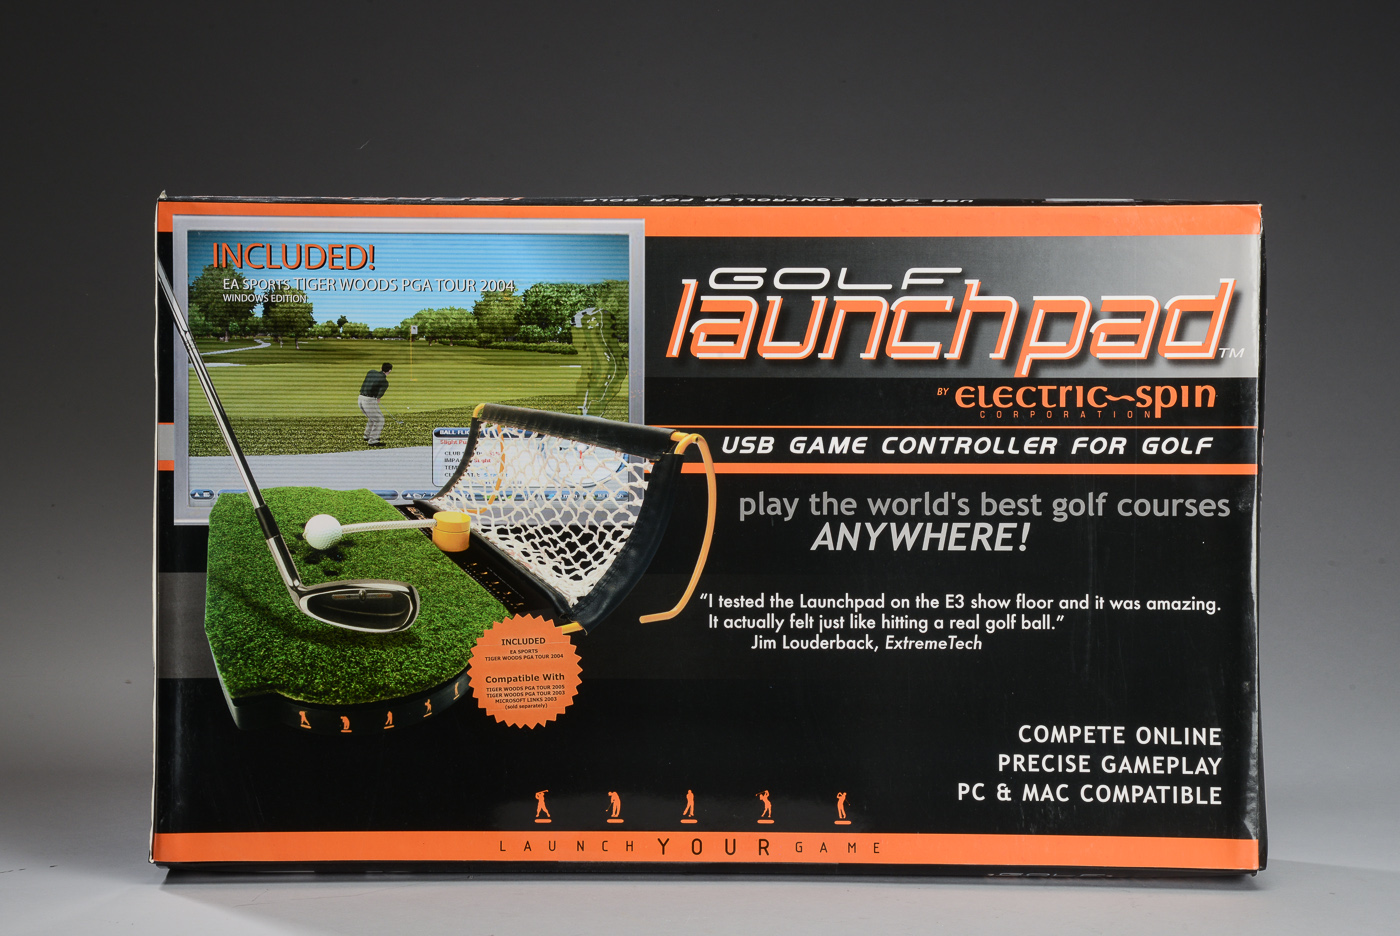 Golf Launchpad electric-spin USB game controle for golf - Golf Launchpad electric-spin USB game controle for golf